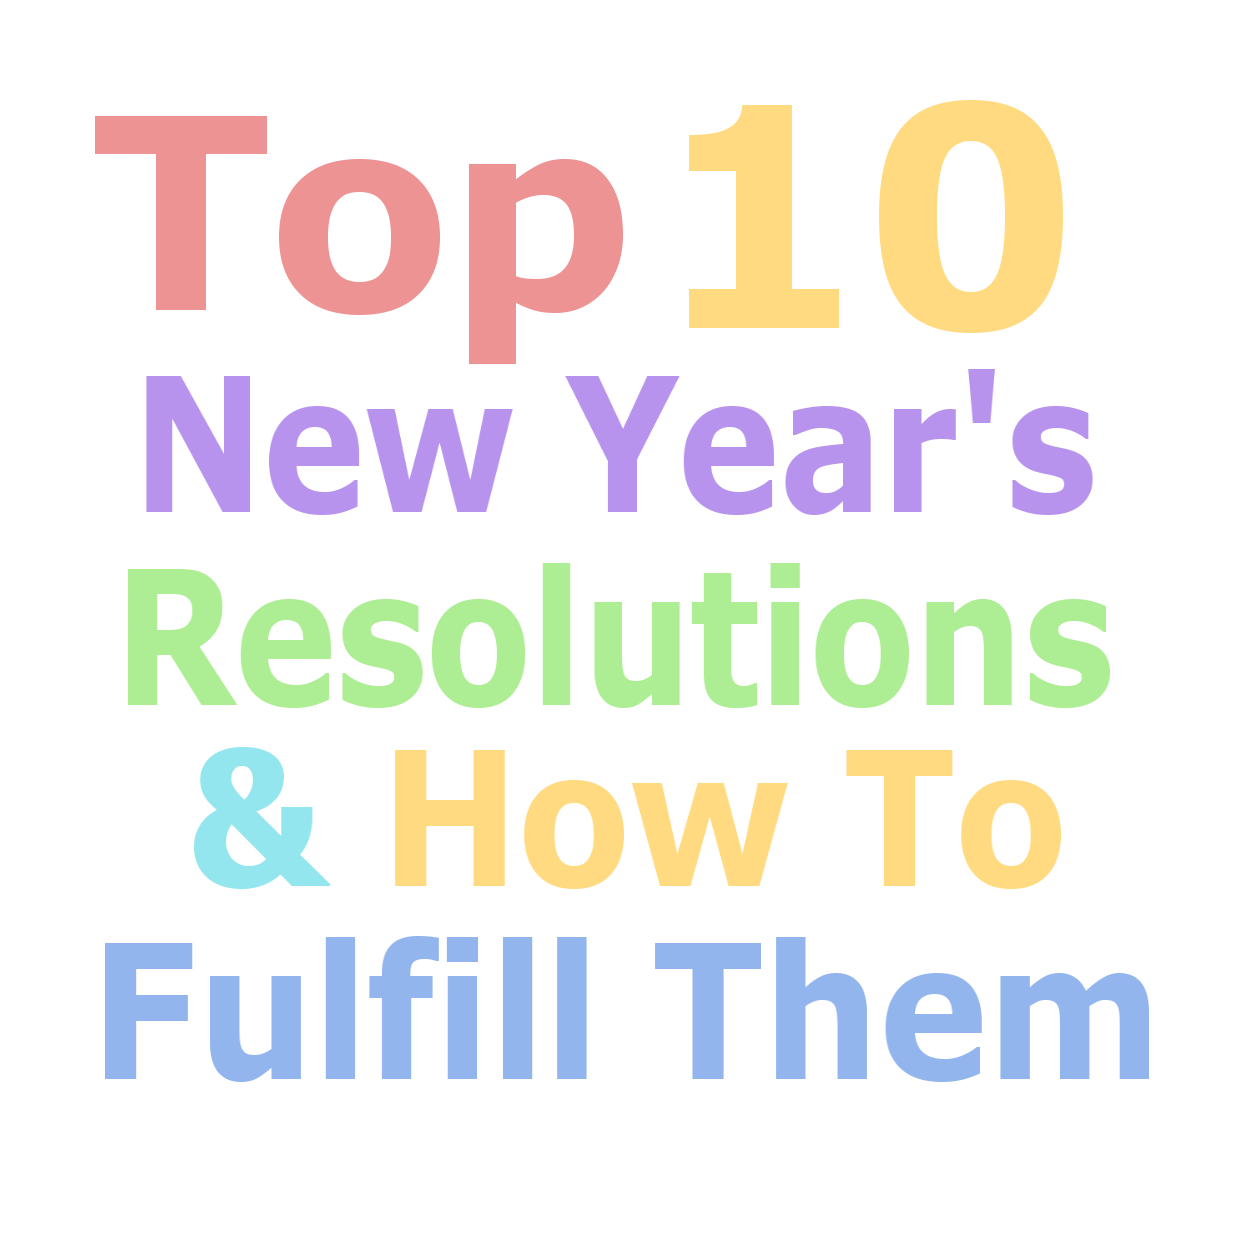 top 10 new years resolutions Top ten new year's resolutions and how to start them have you ever wondered what everyone else was committing to for the new year have a look at our top 10 and see if yours made the cut to help you get the ball rolling, we've included some easy ways to help get you started 1 improve your fitness.